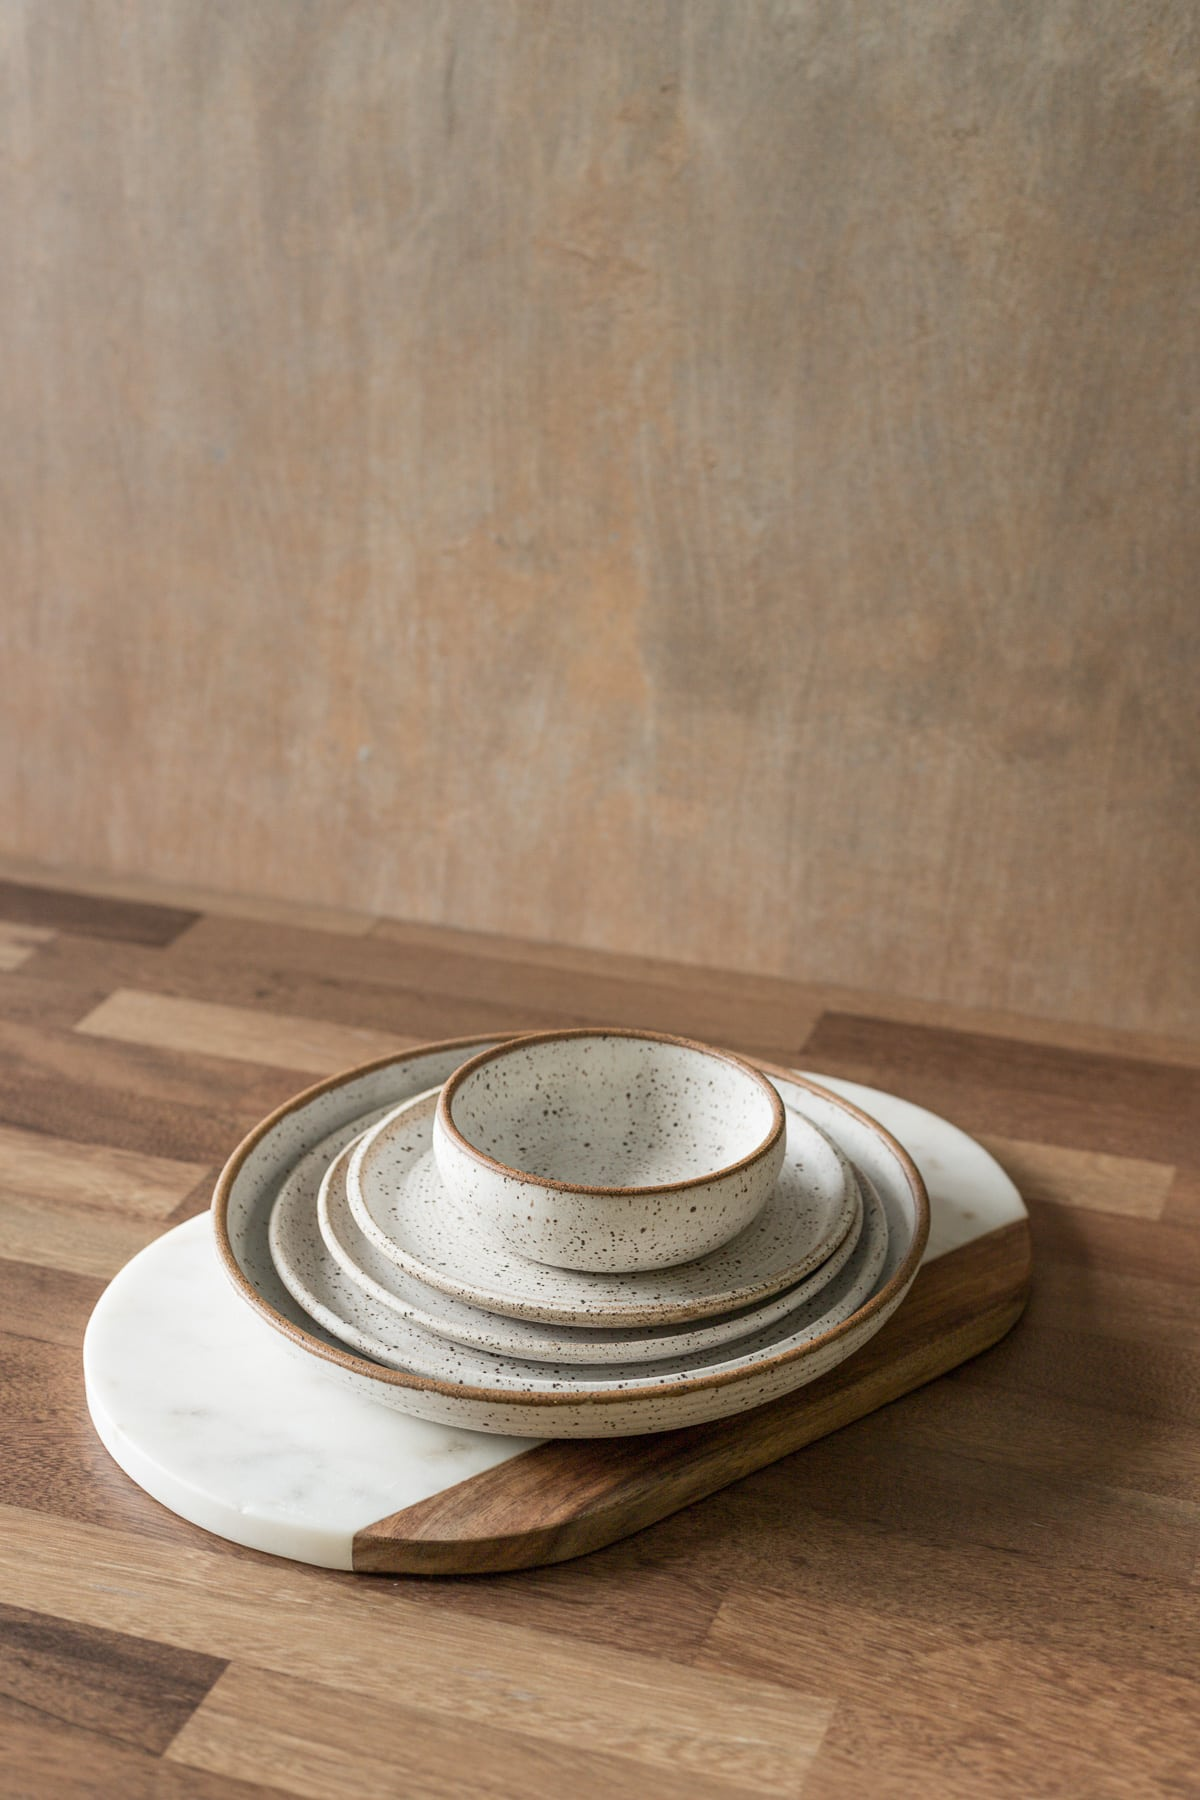 Pottery plate and bowls stacked on a marble cutting board